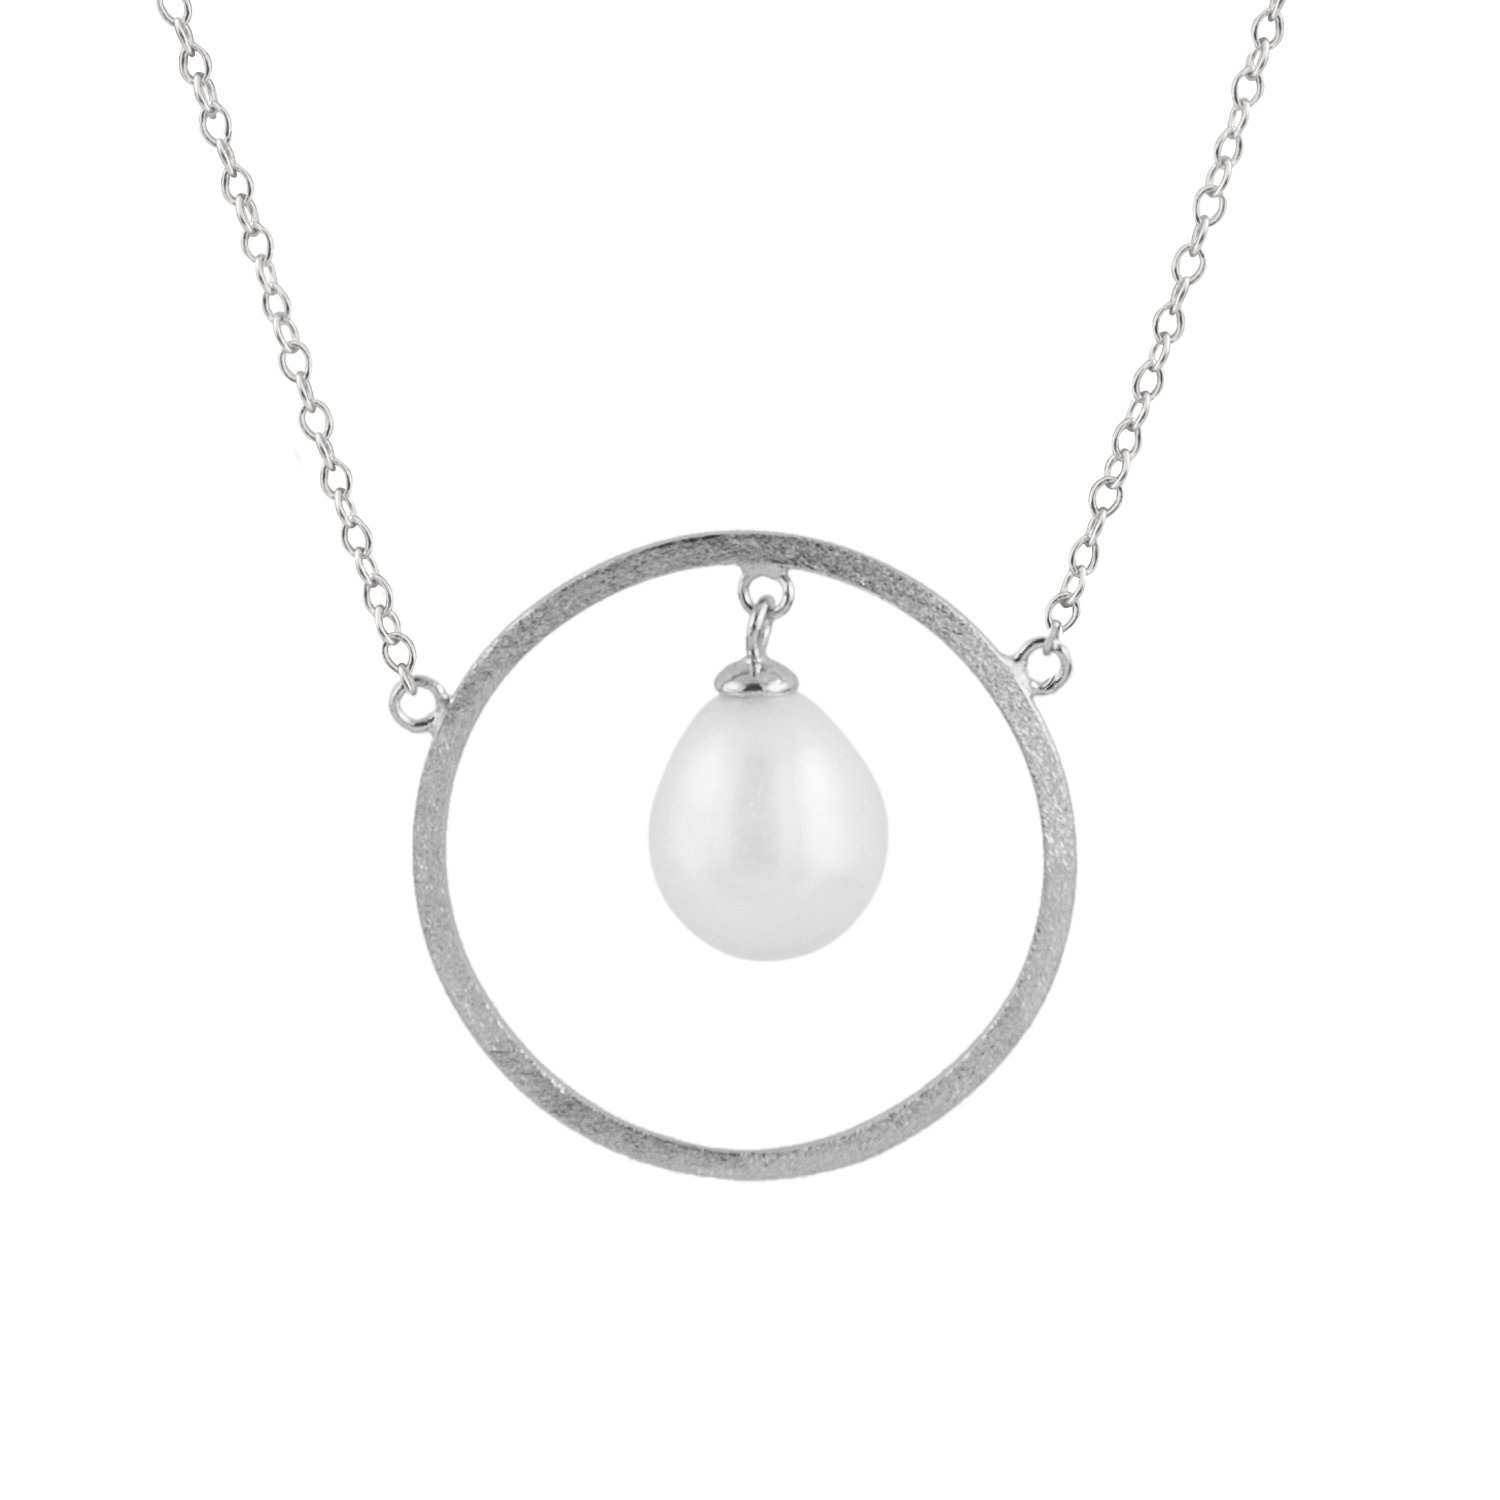 Handpicked AA Sterling Silver Rhodium-Plated Necklace Freshwater Cultured Pearls